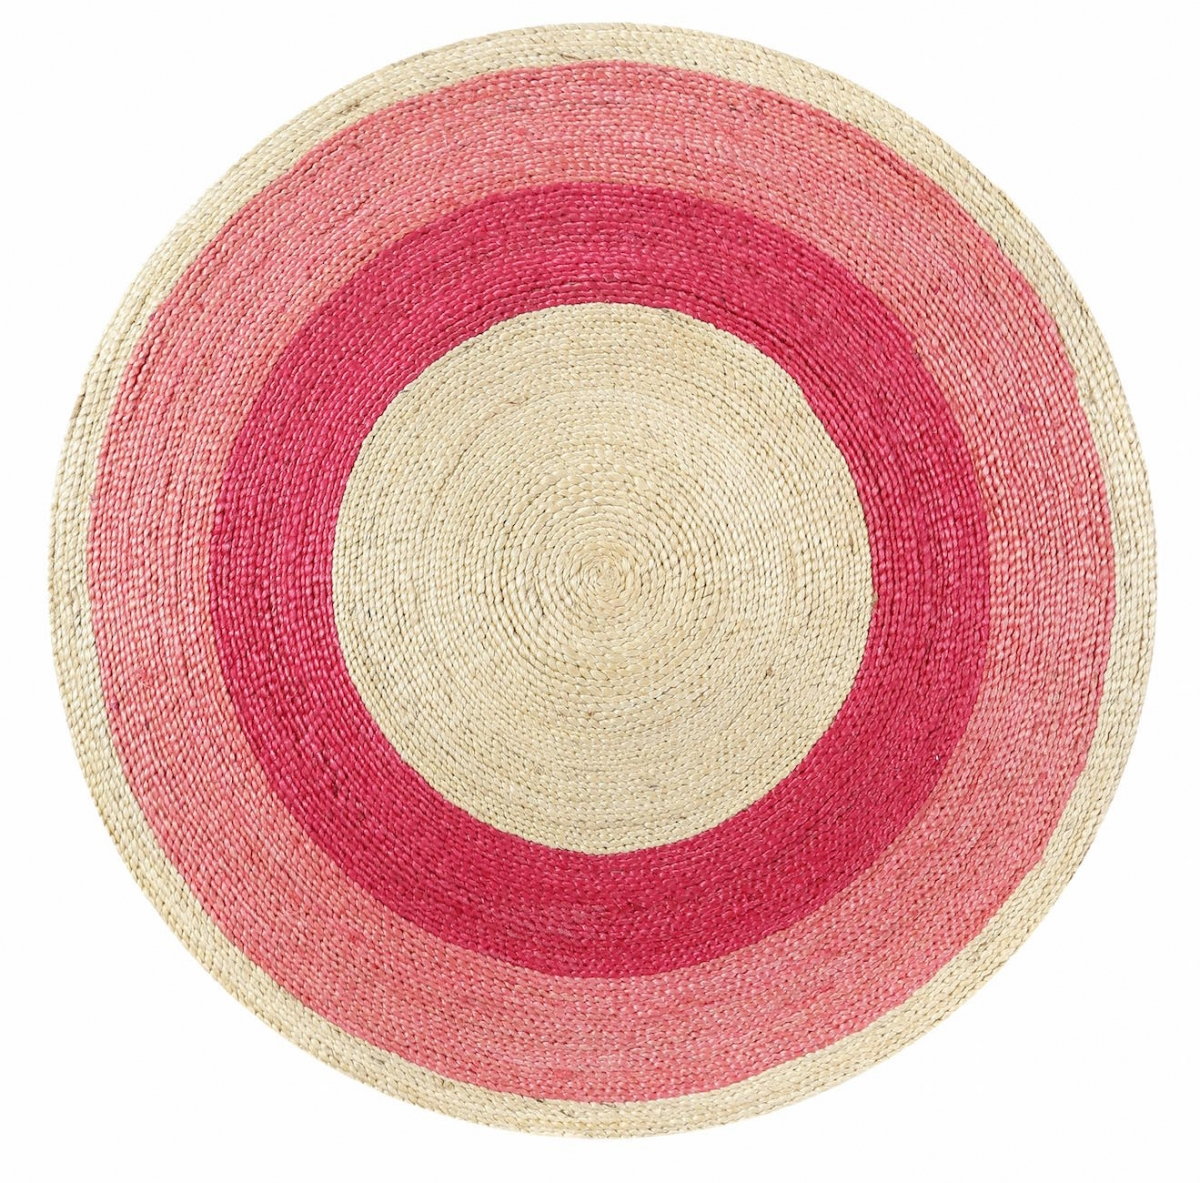 Esprit Rug Beach House Red Esp 6251 01